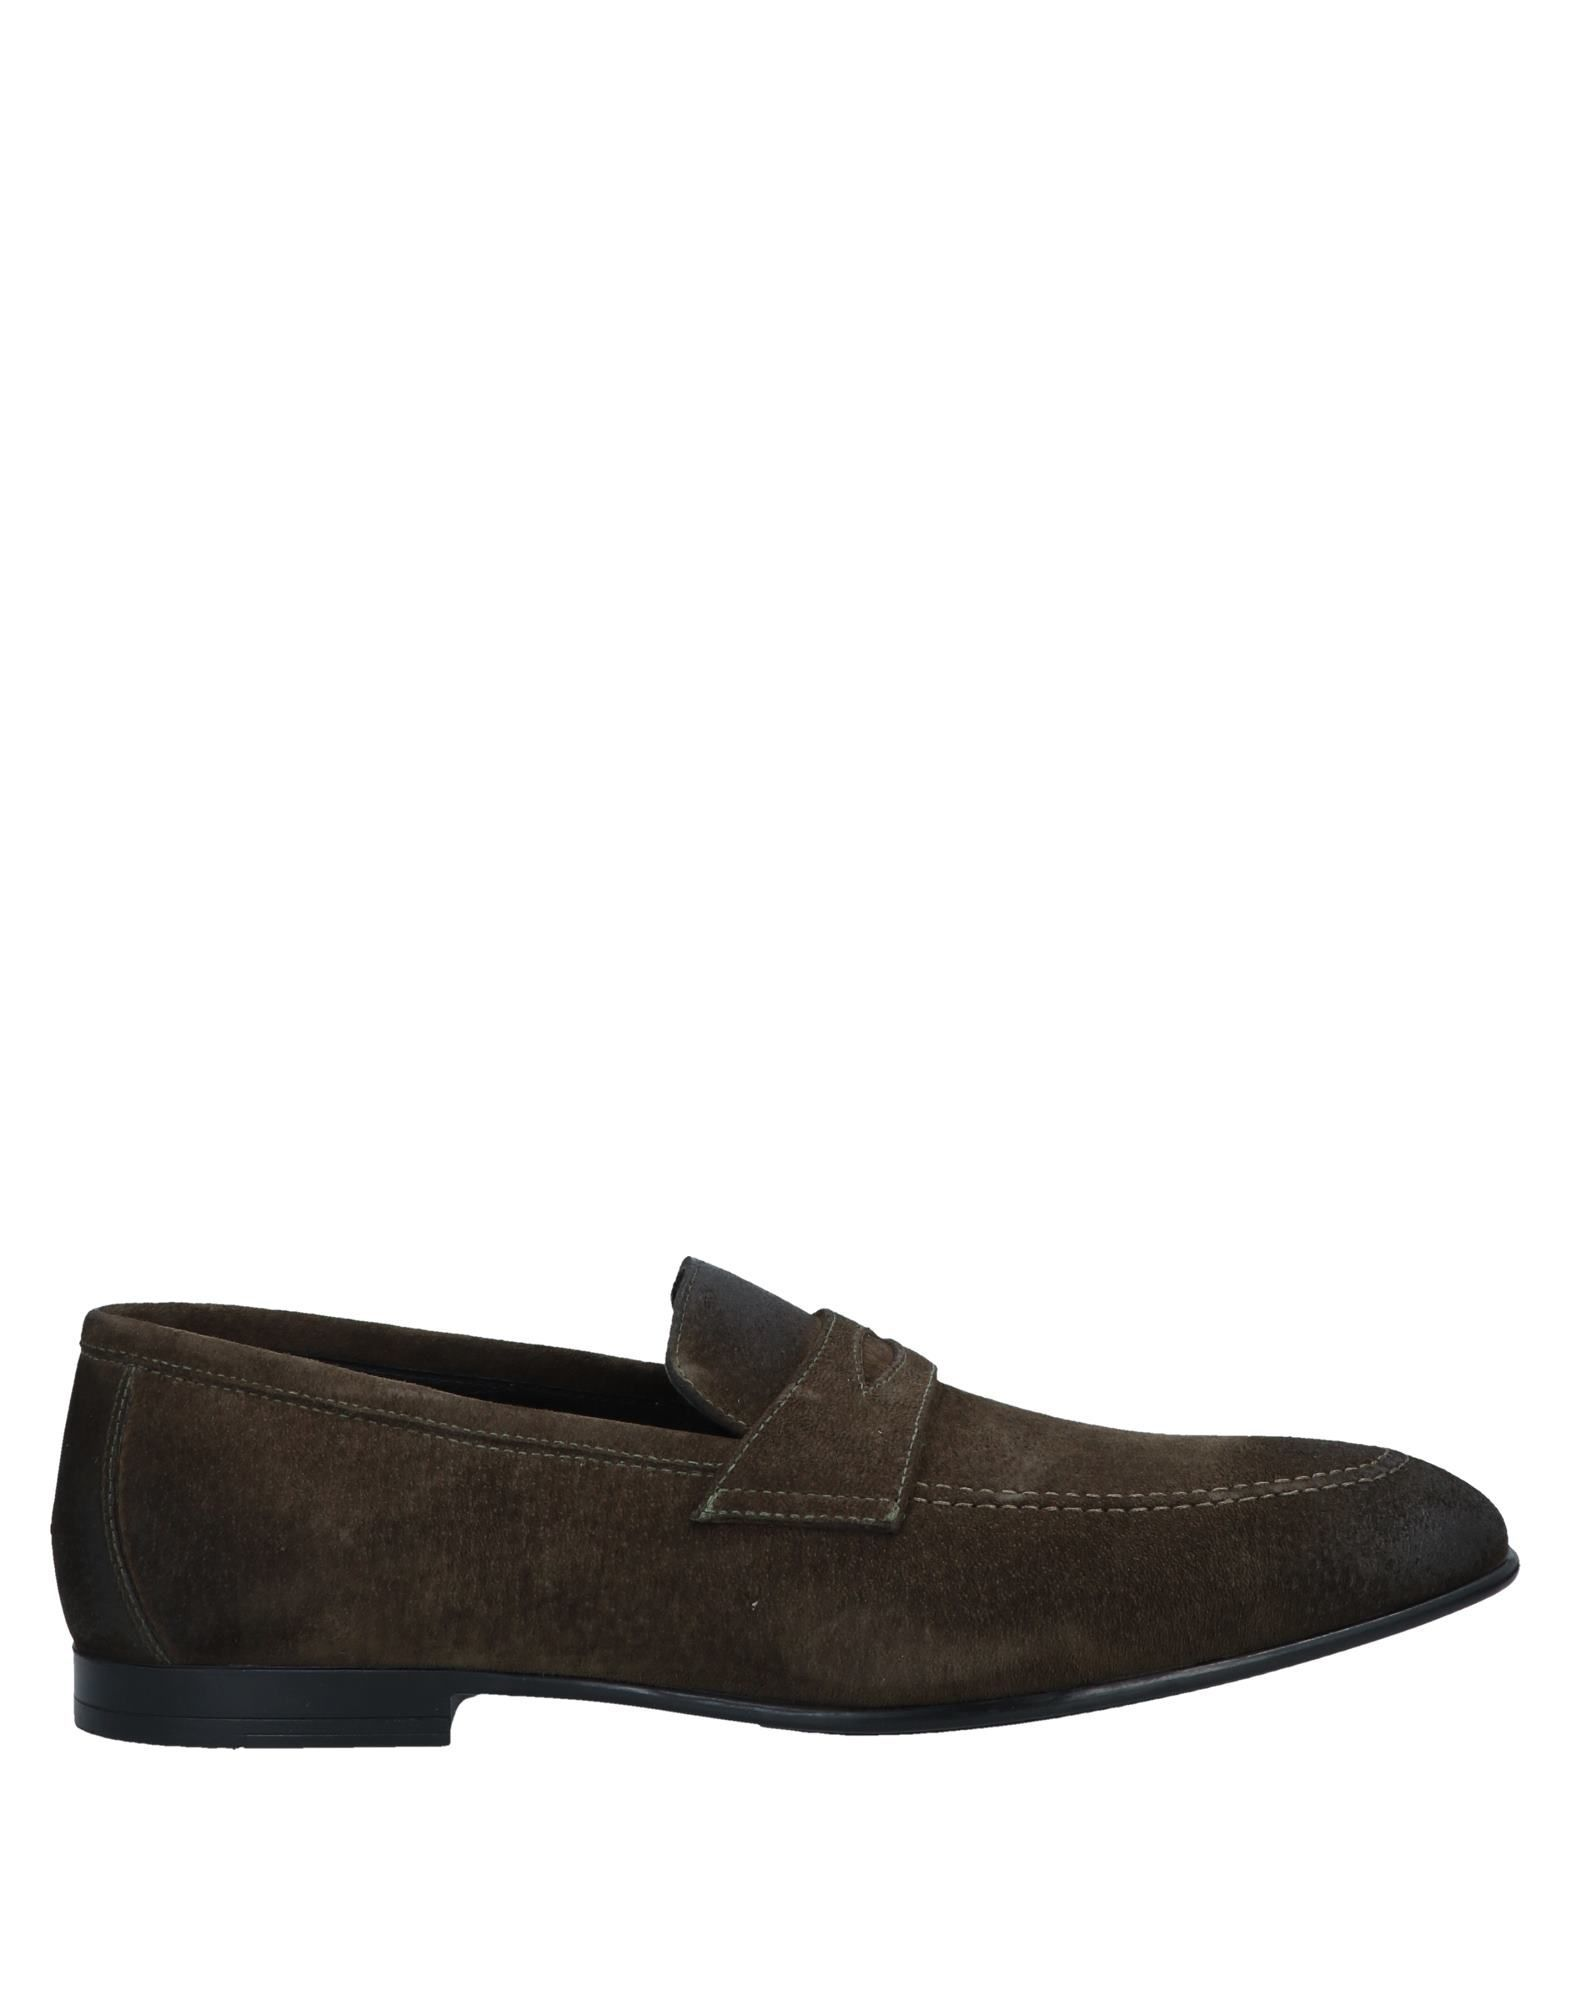 0291187469a DOUCAL S LOAFERS.  doucals  shoes